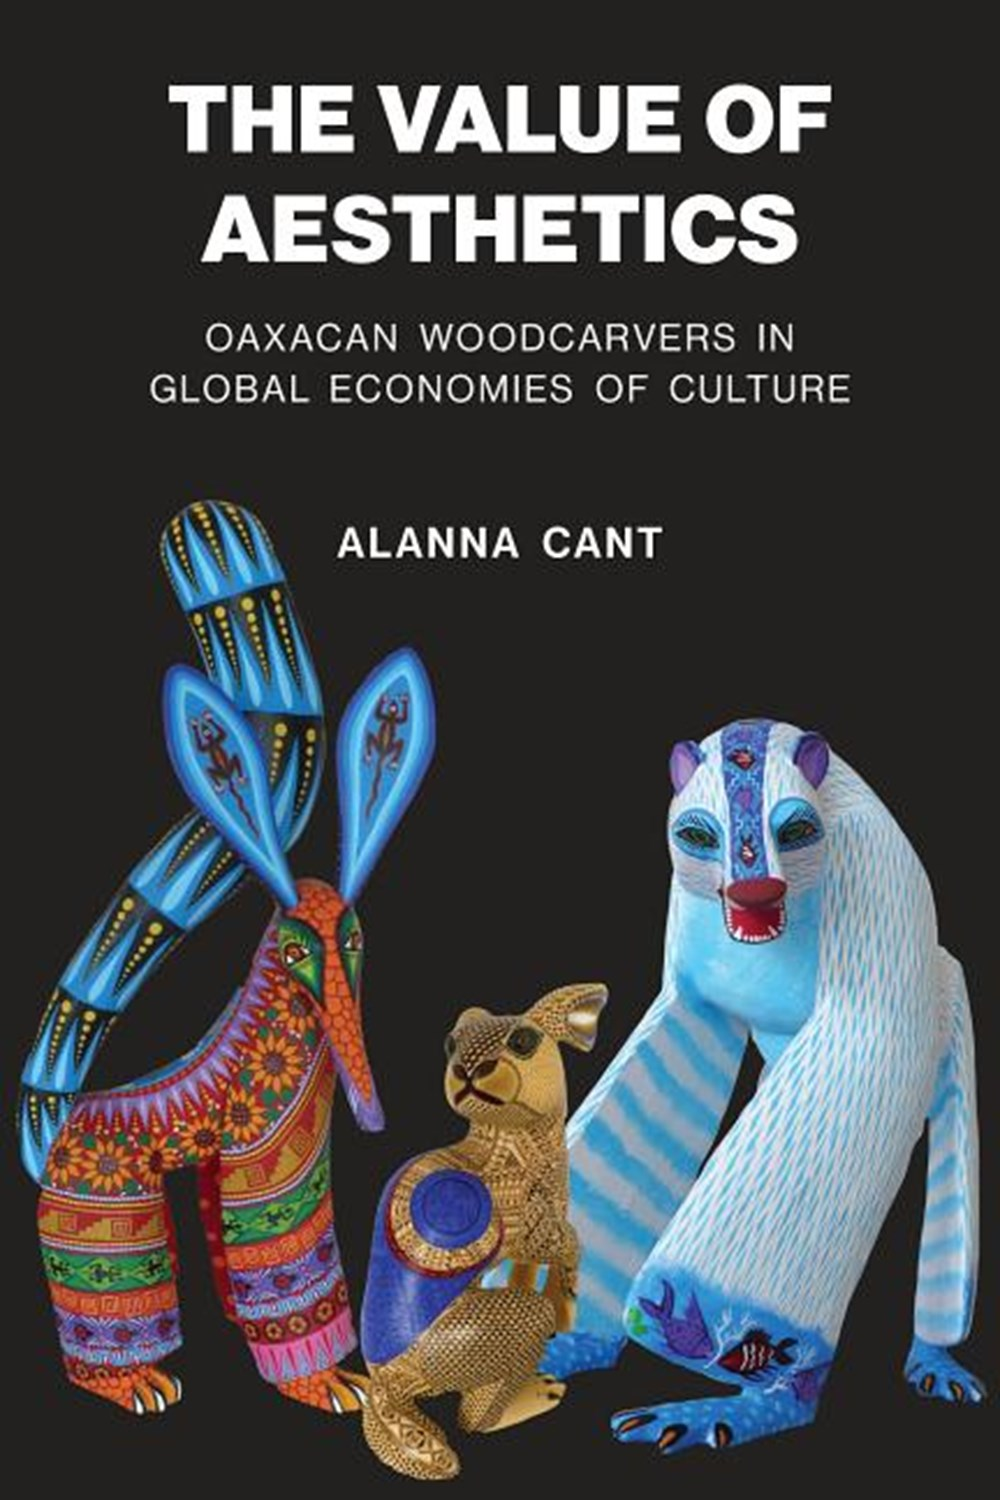 Value of Aesthetics Oaxacan Woodcarvers in Global Economies of Culture